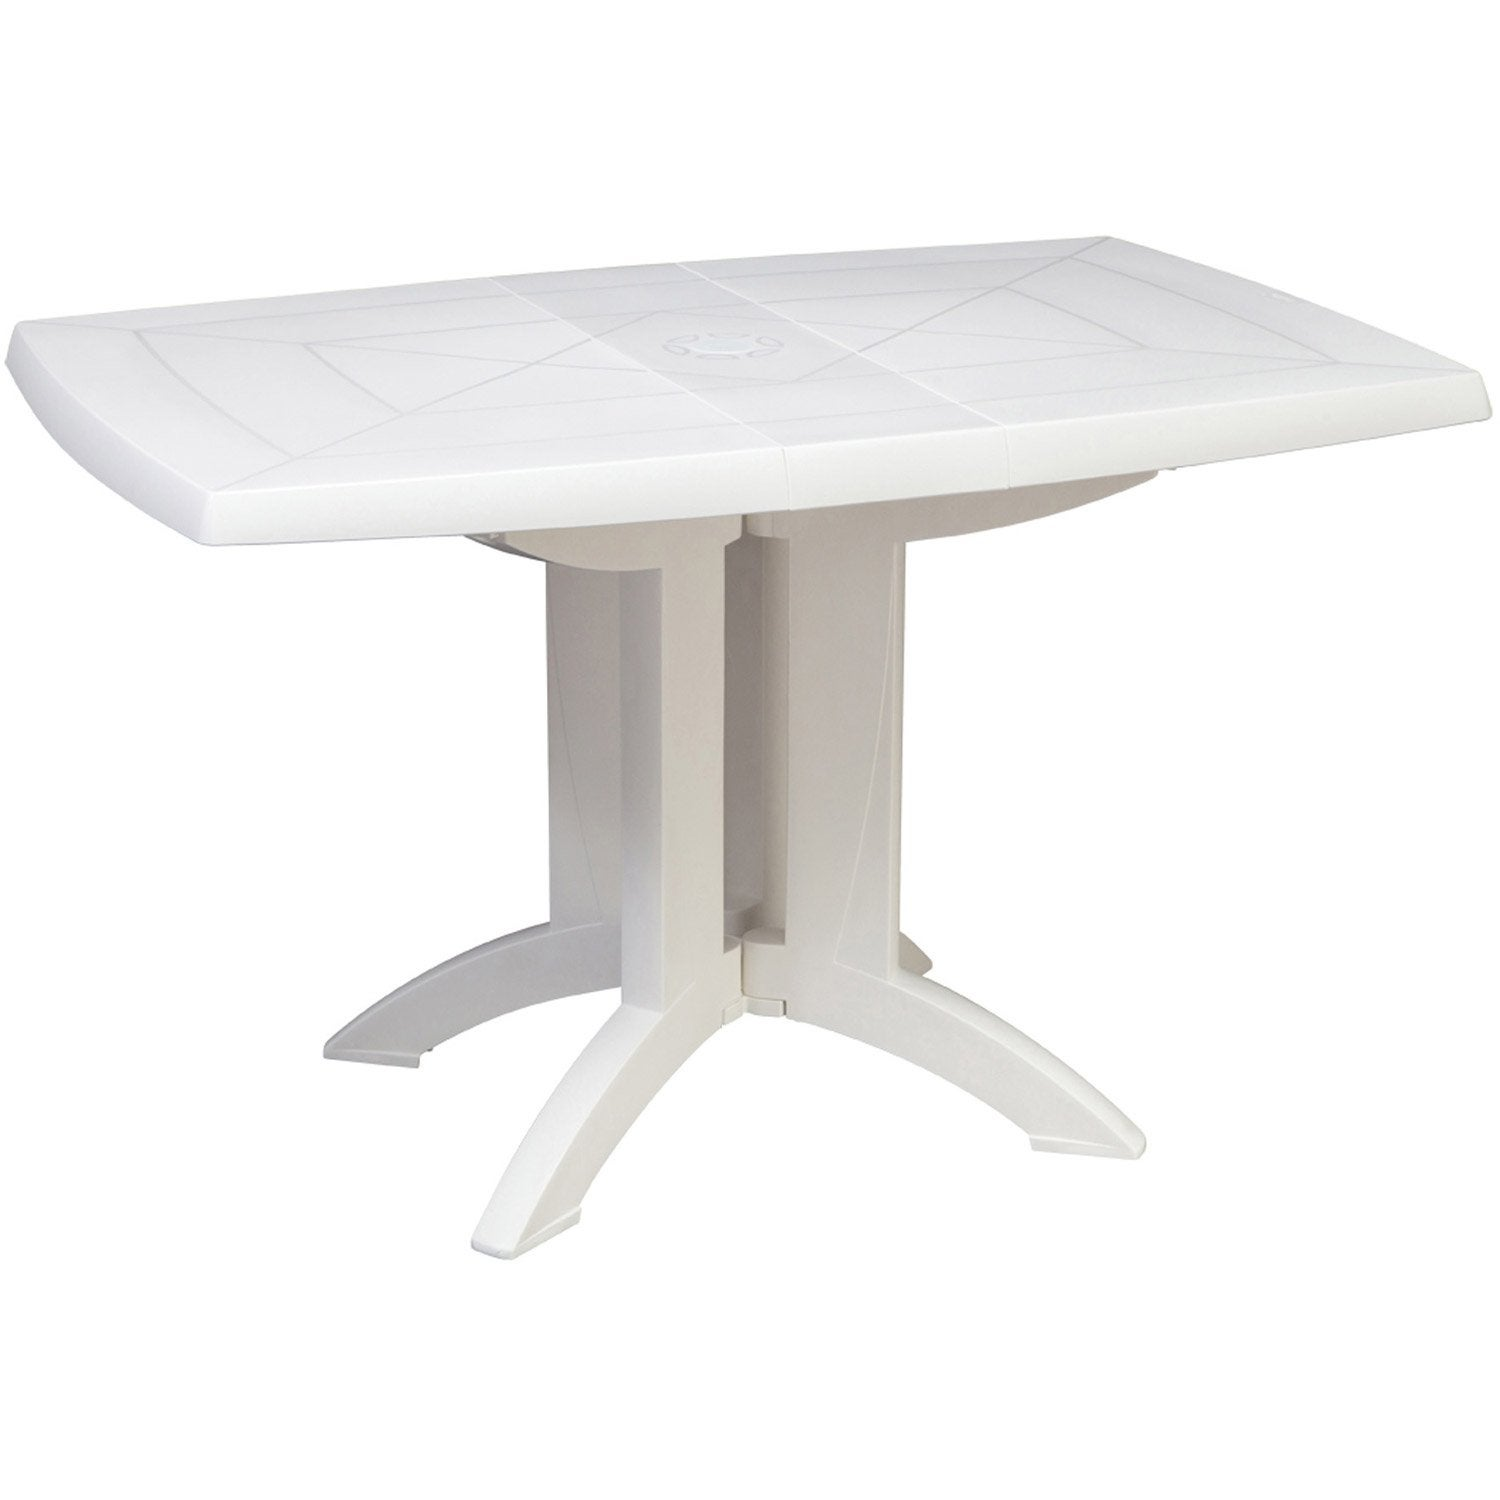 Table De Jardin Grosfillex V Ga Rectangulaire Blanc 4 Personnes Leroy Merlin